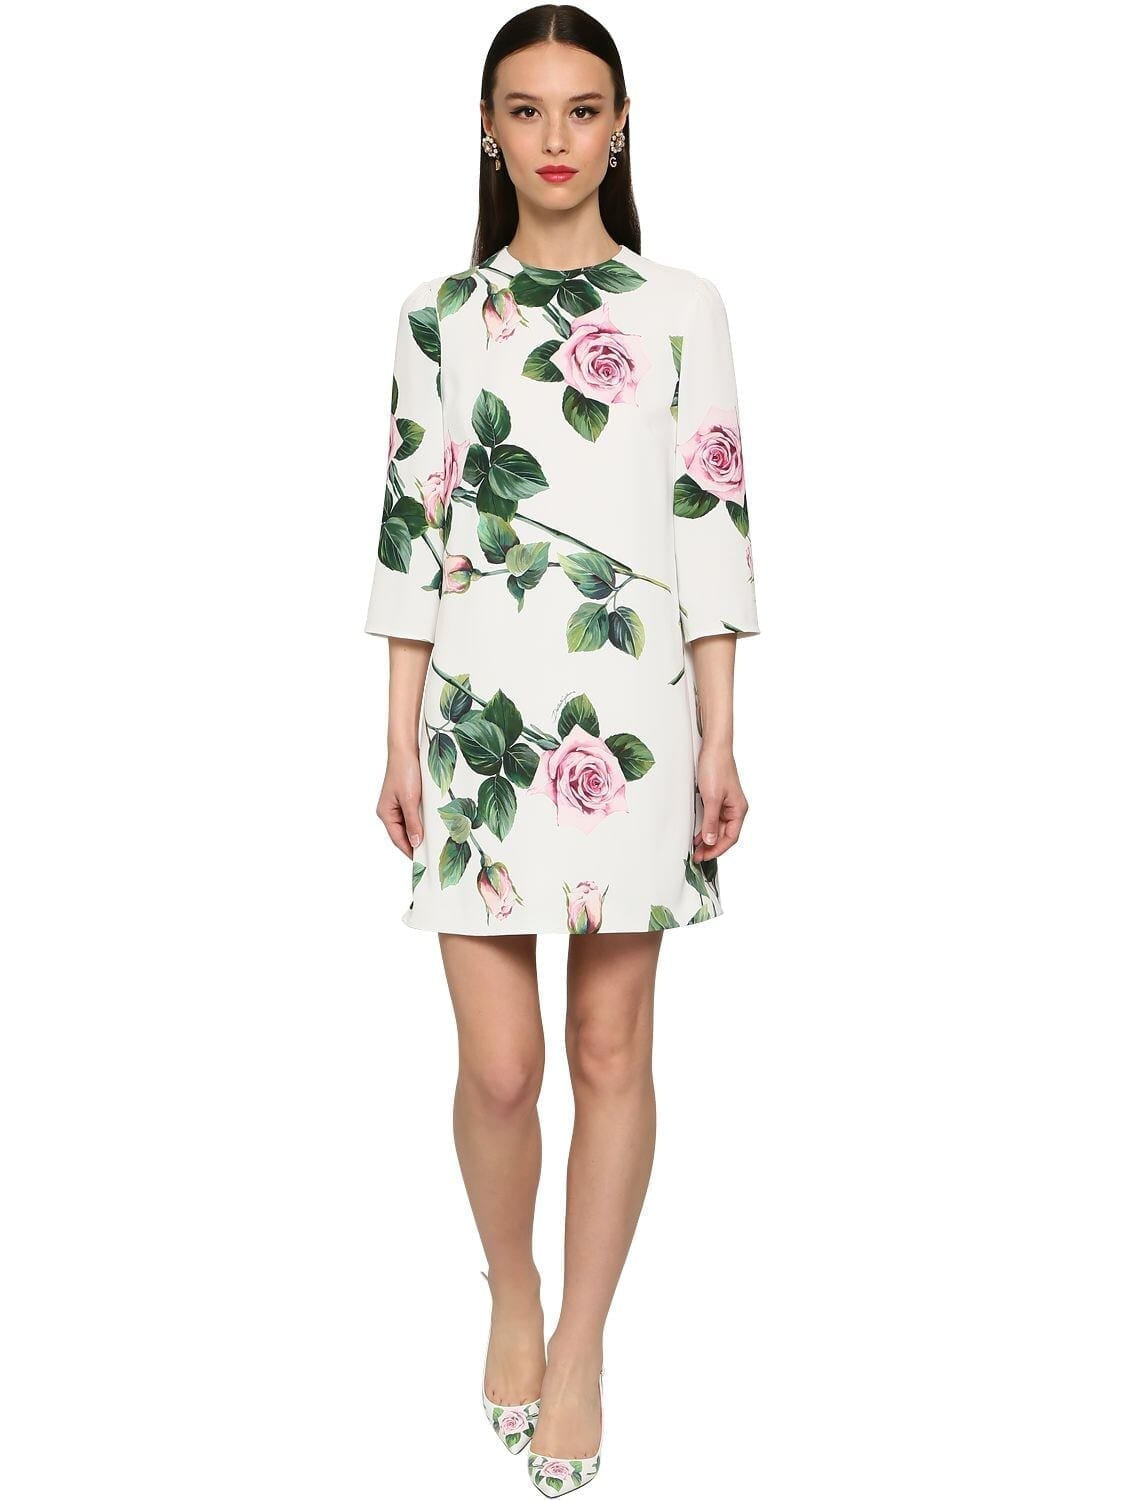 DOLCE & GABBANA Printed Cady Stretch Mini Dress